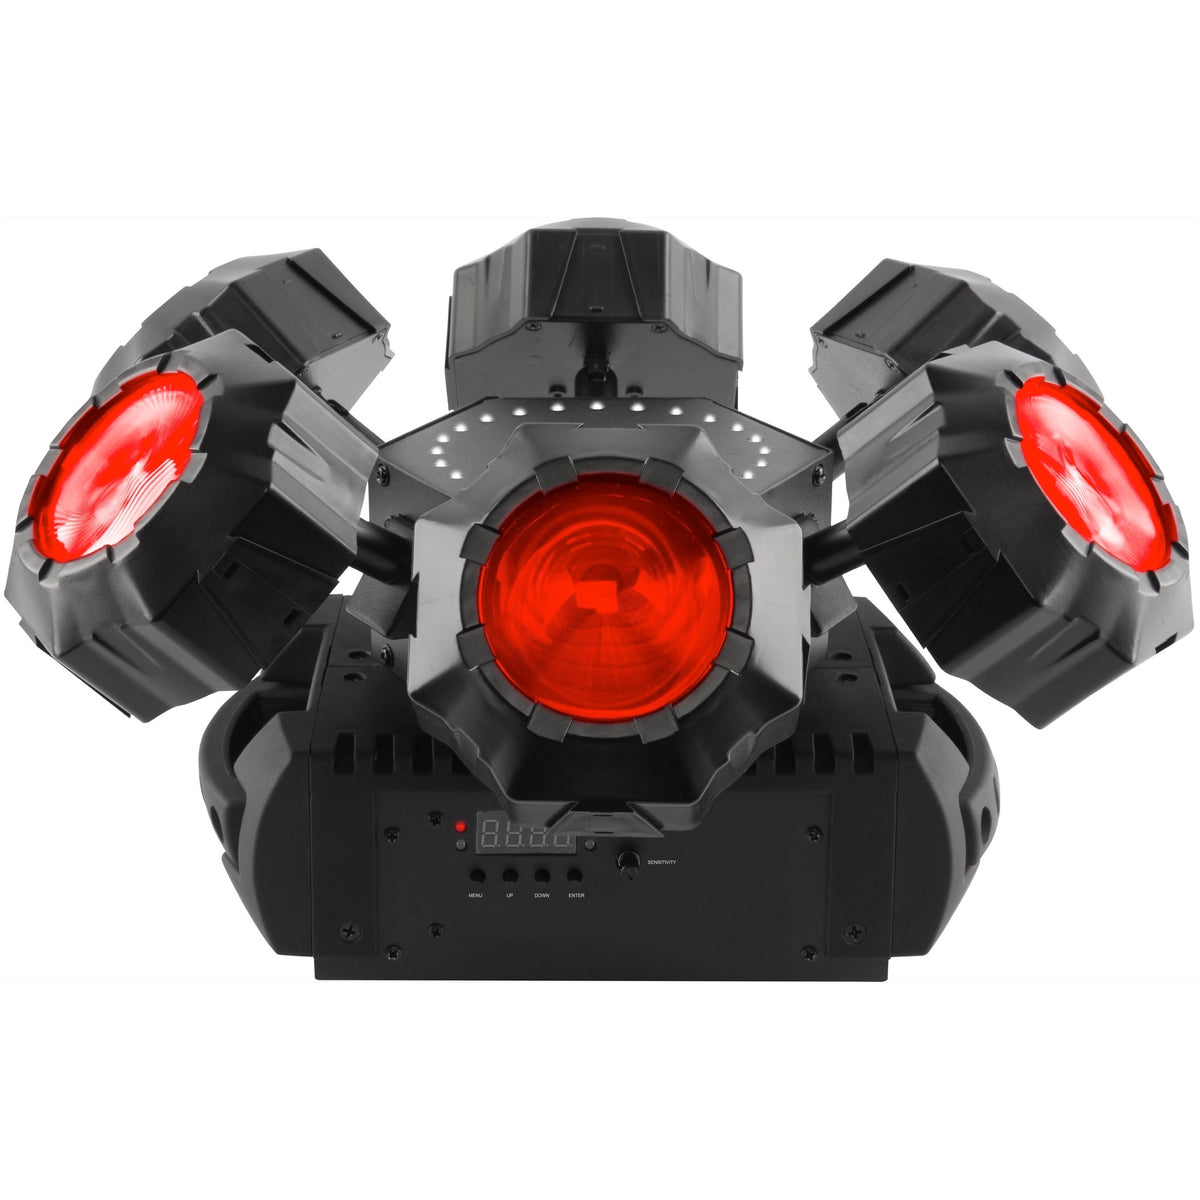 Chauvet DJ Helicopter Q6 Effect Light